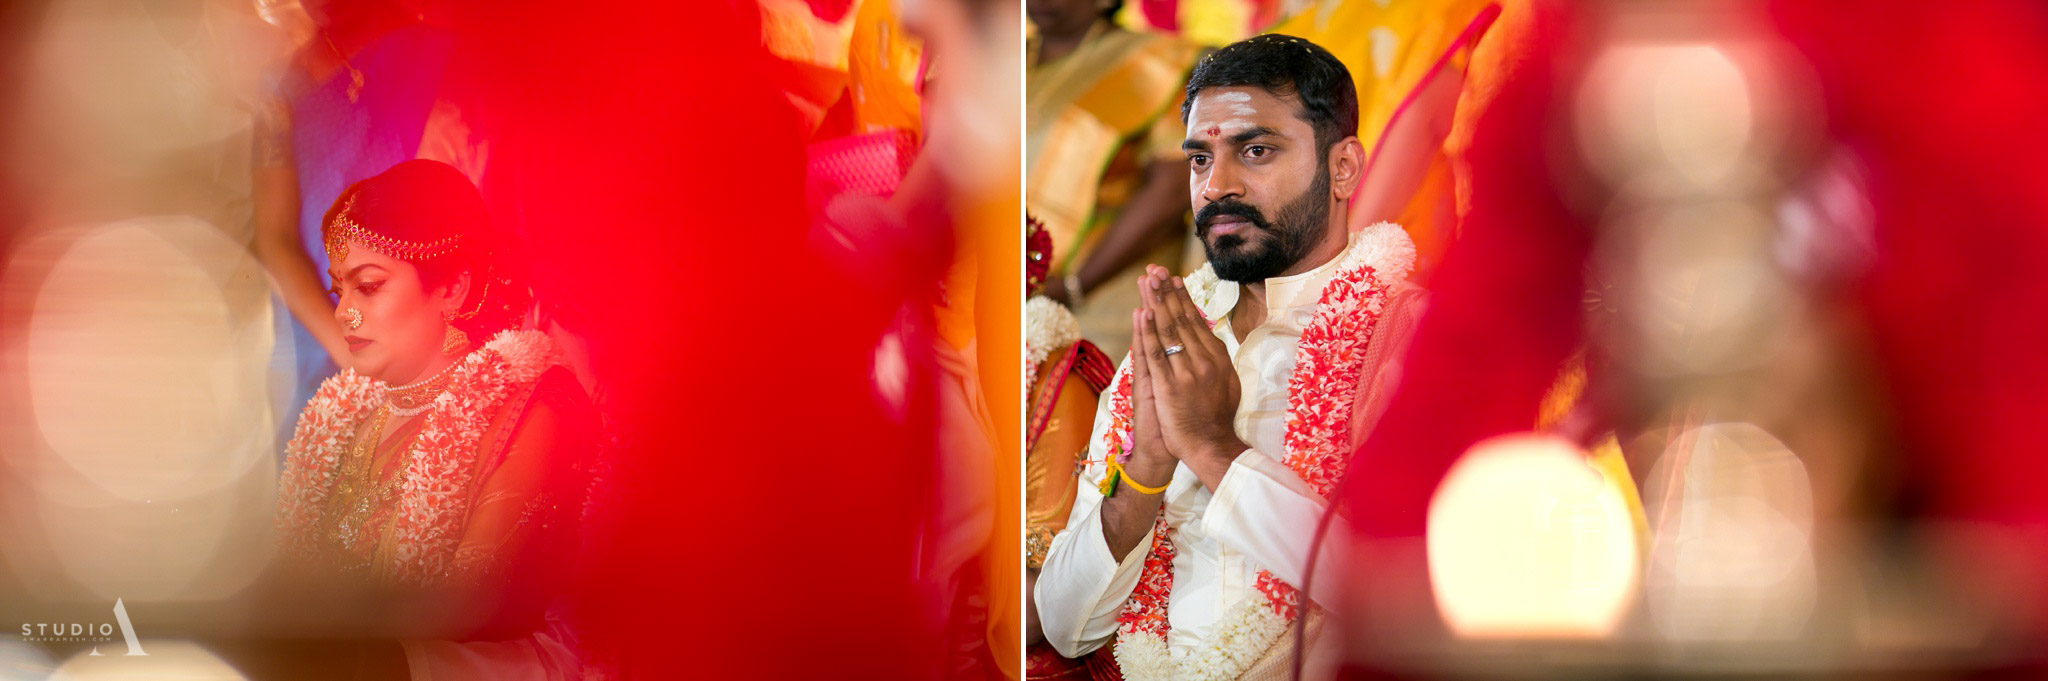 candid-wedding-photographer-chennai-16